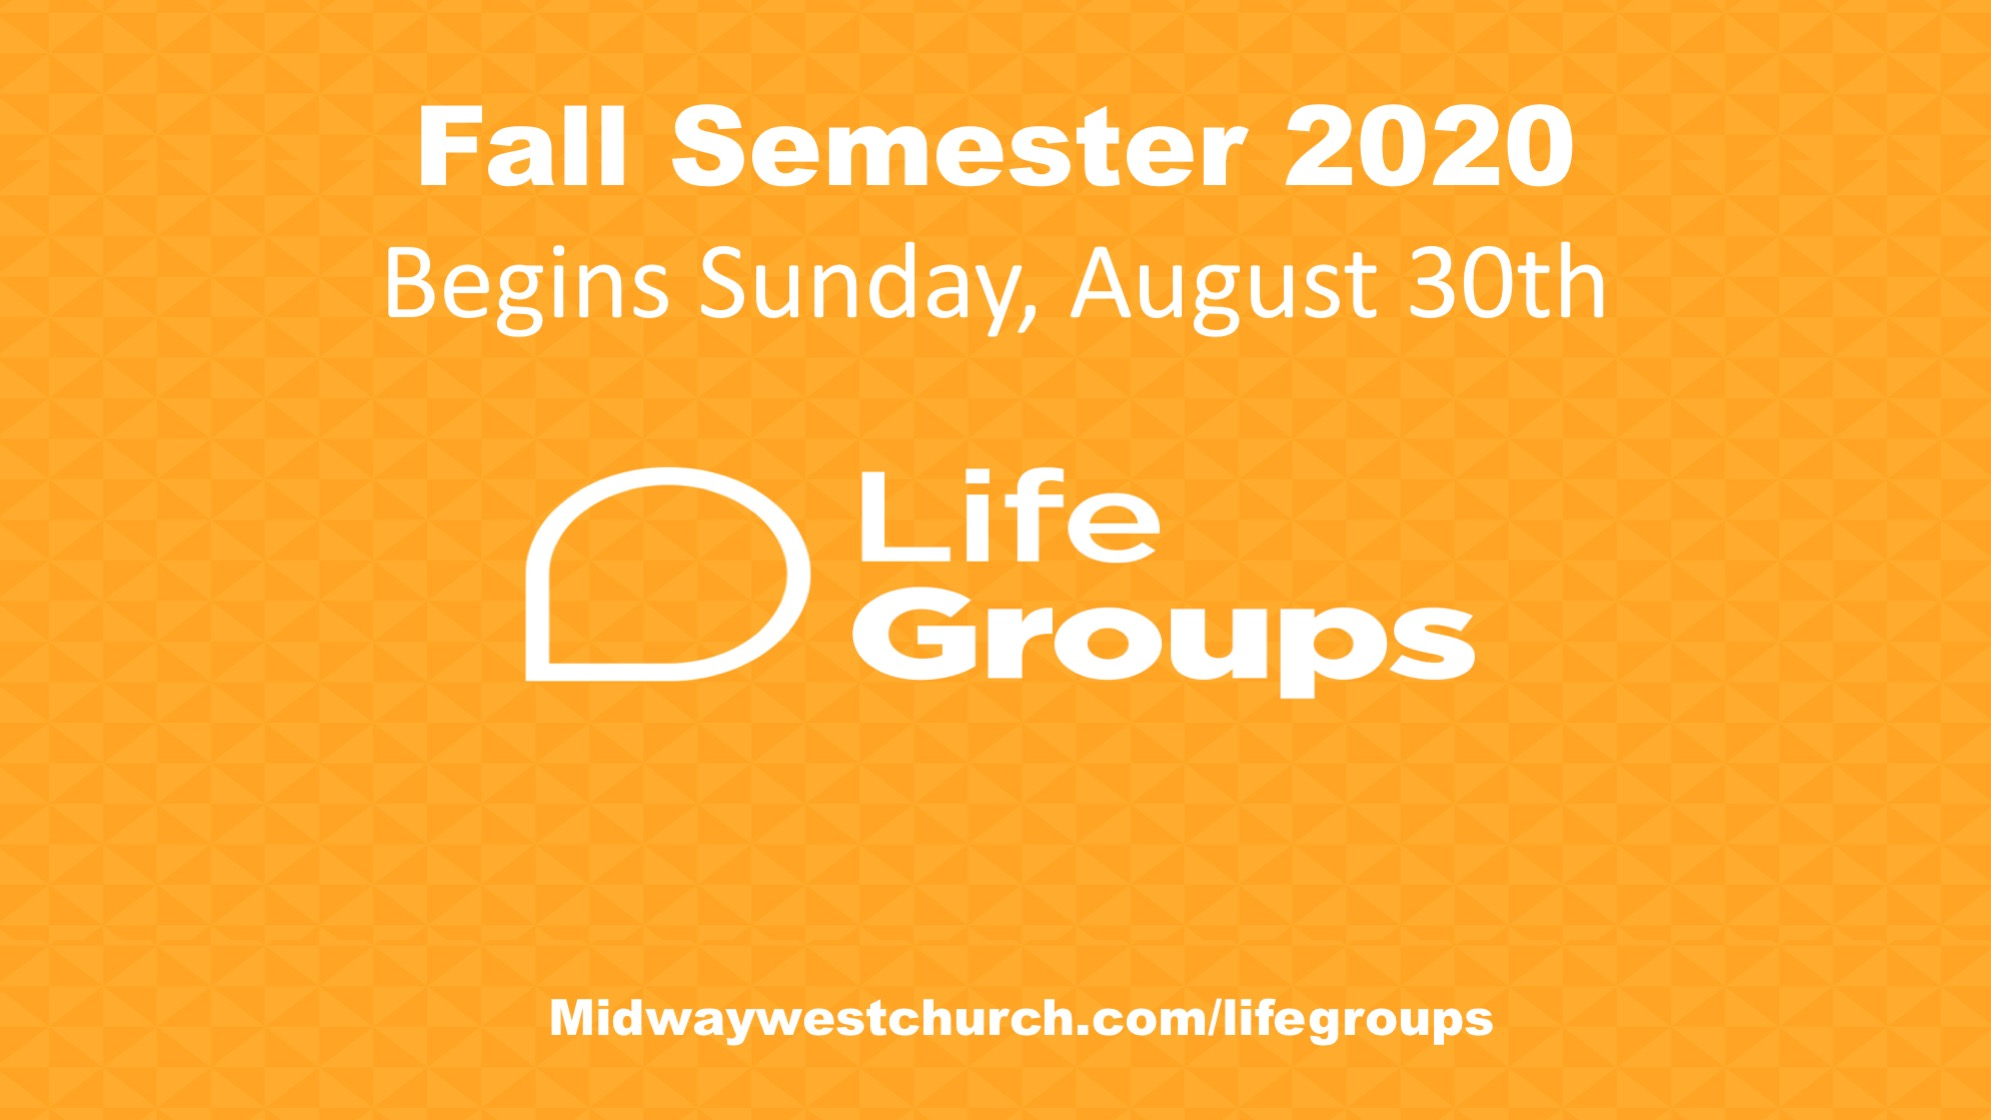 Life Group Semister 2020